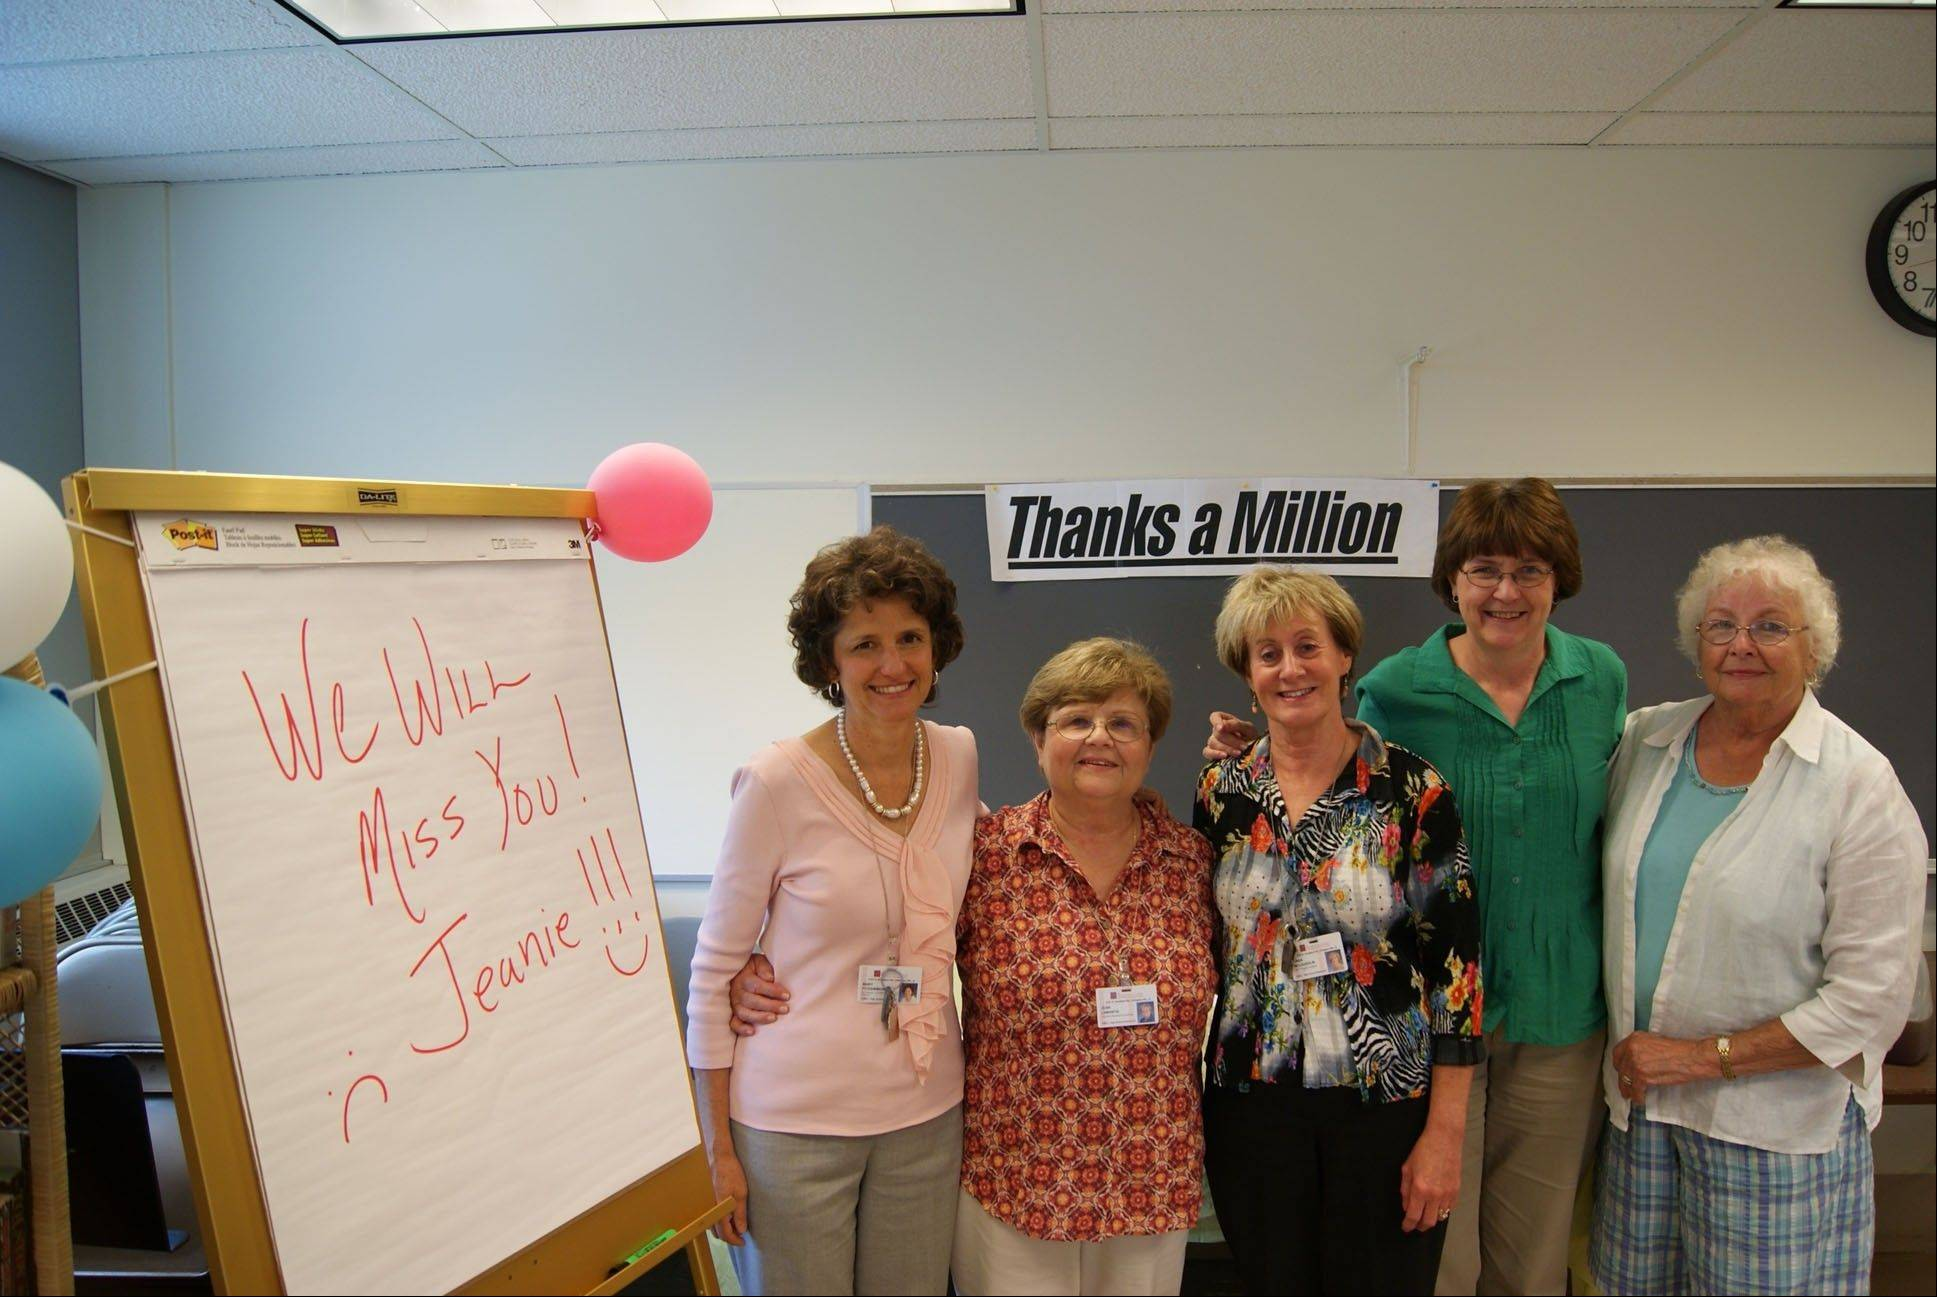 Mary Fitzgibbons, Jean Lamantia, Linda McLaughlin, Sarah Maple and Jean Russel at Lamantia�s retirement party at HandsOn Suburban Chicago.